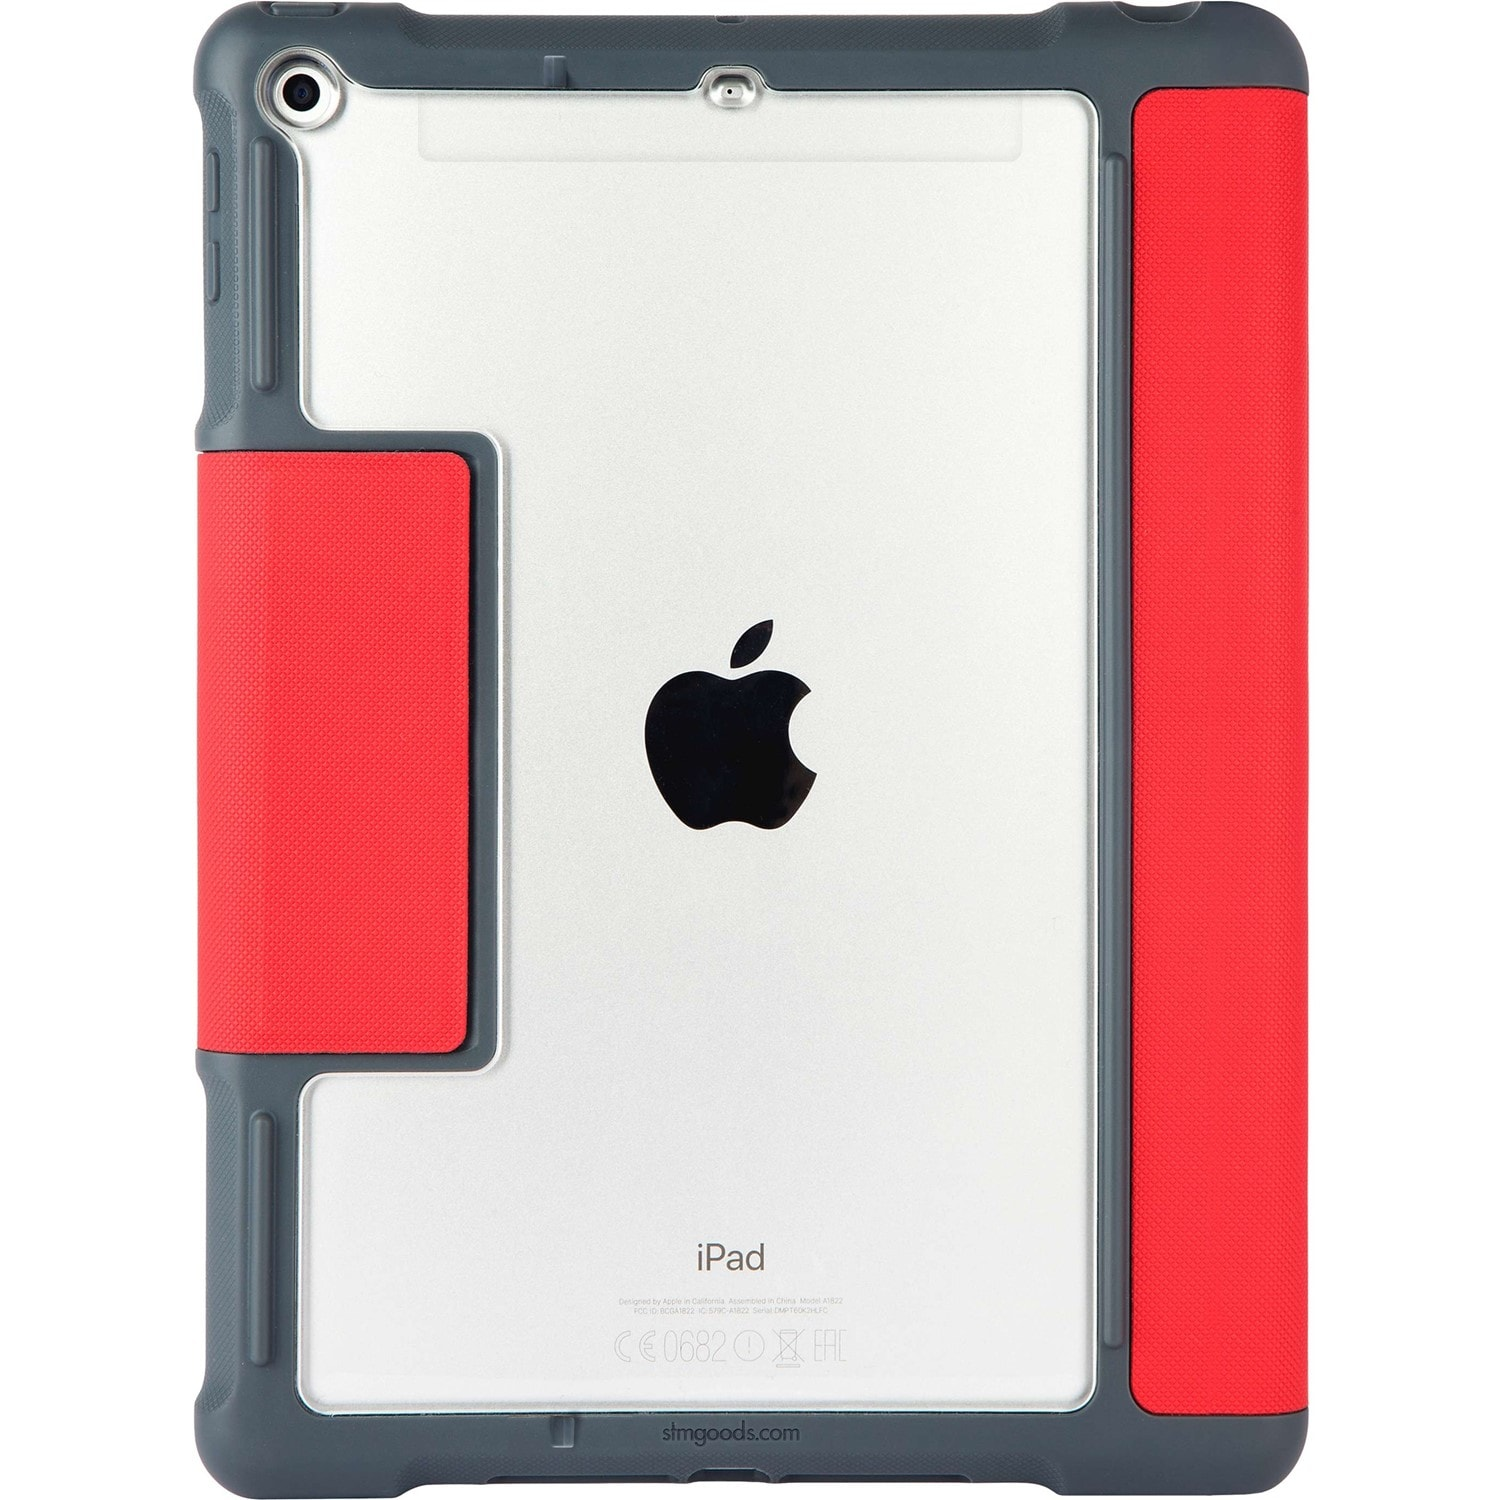 Buy Stm Goods Dux Plus Carrying Case Ipad 2018 Ipad